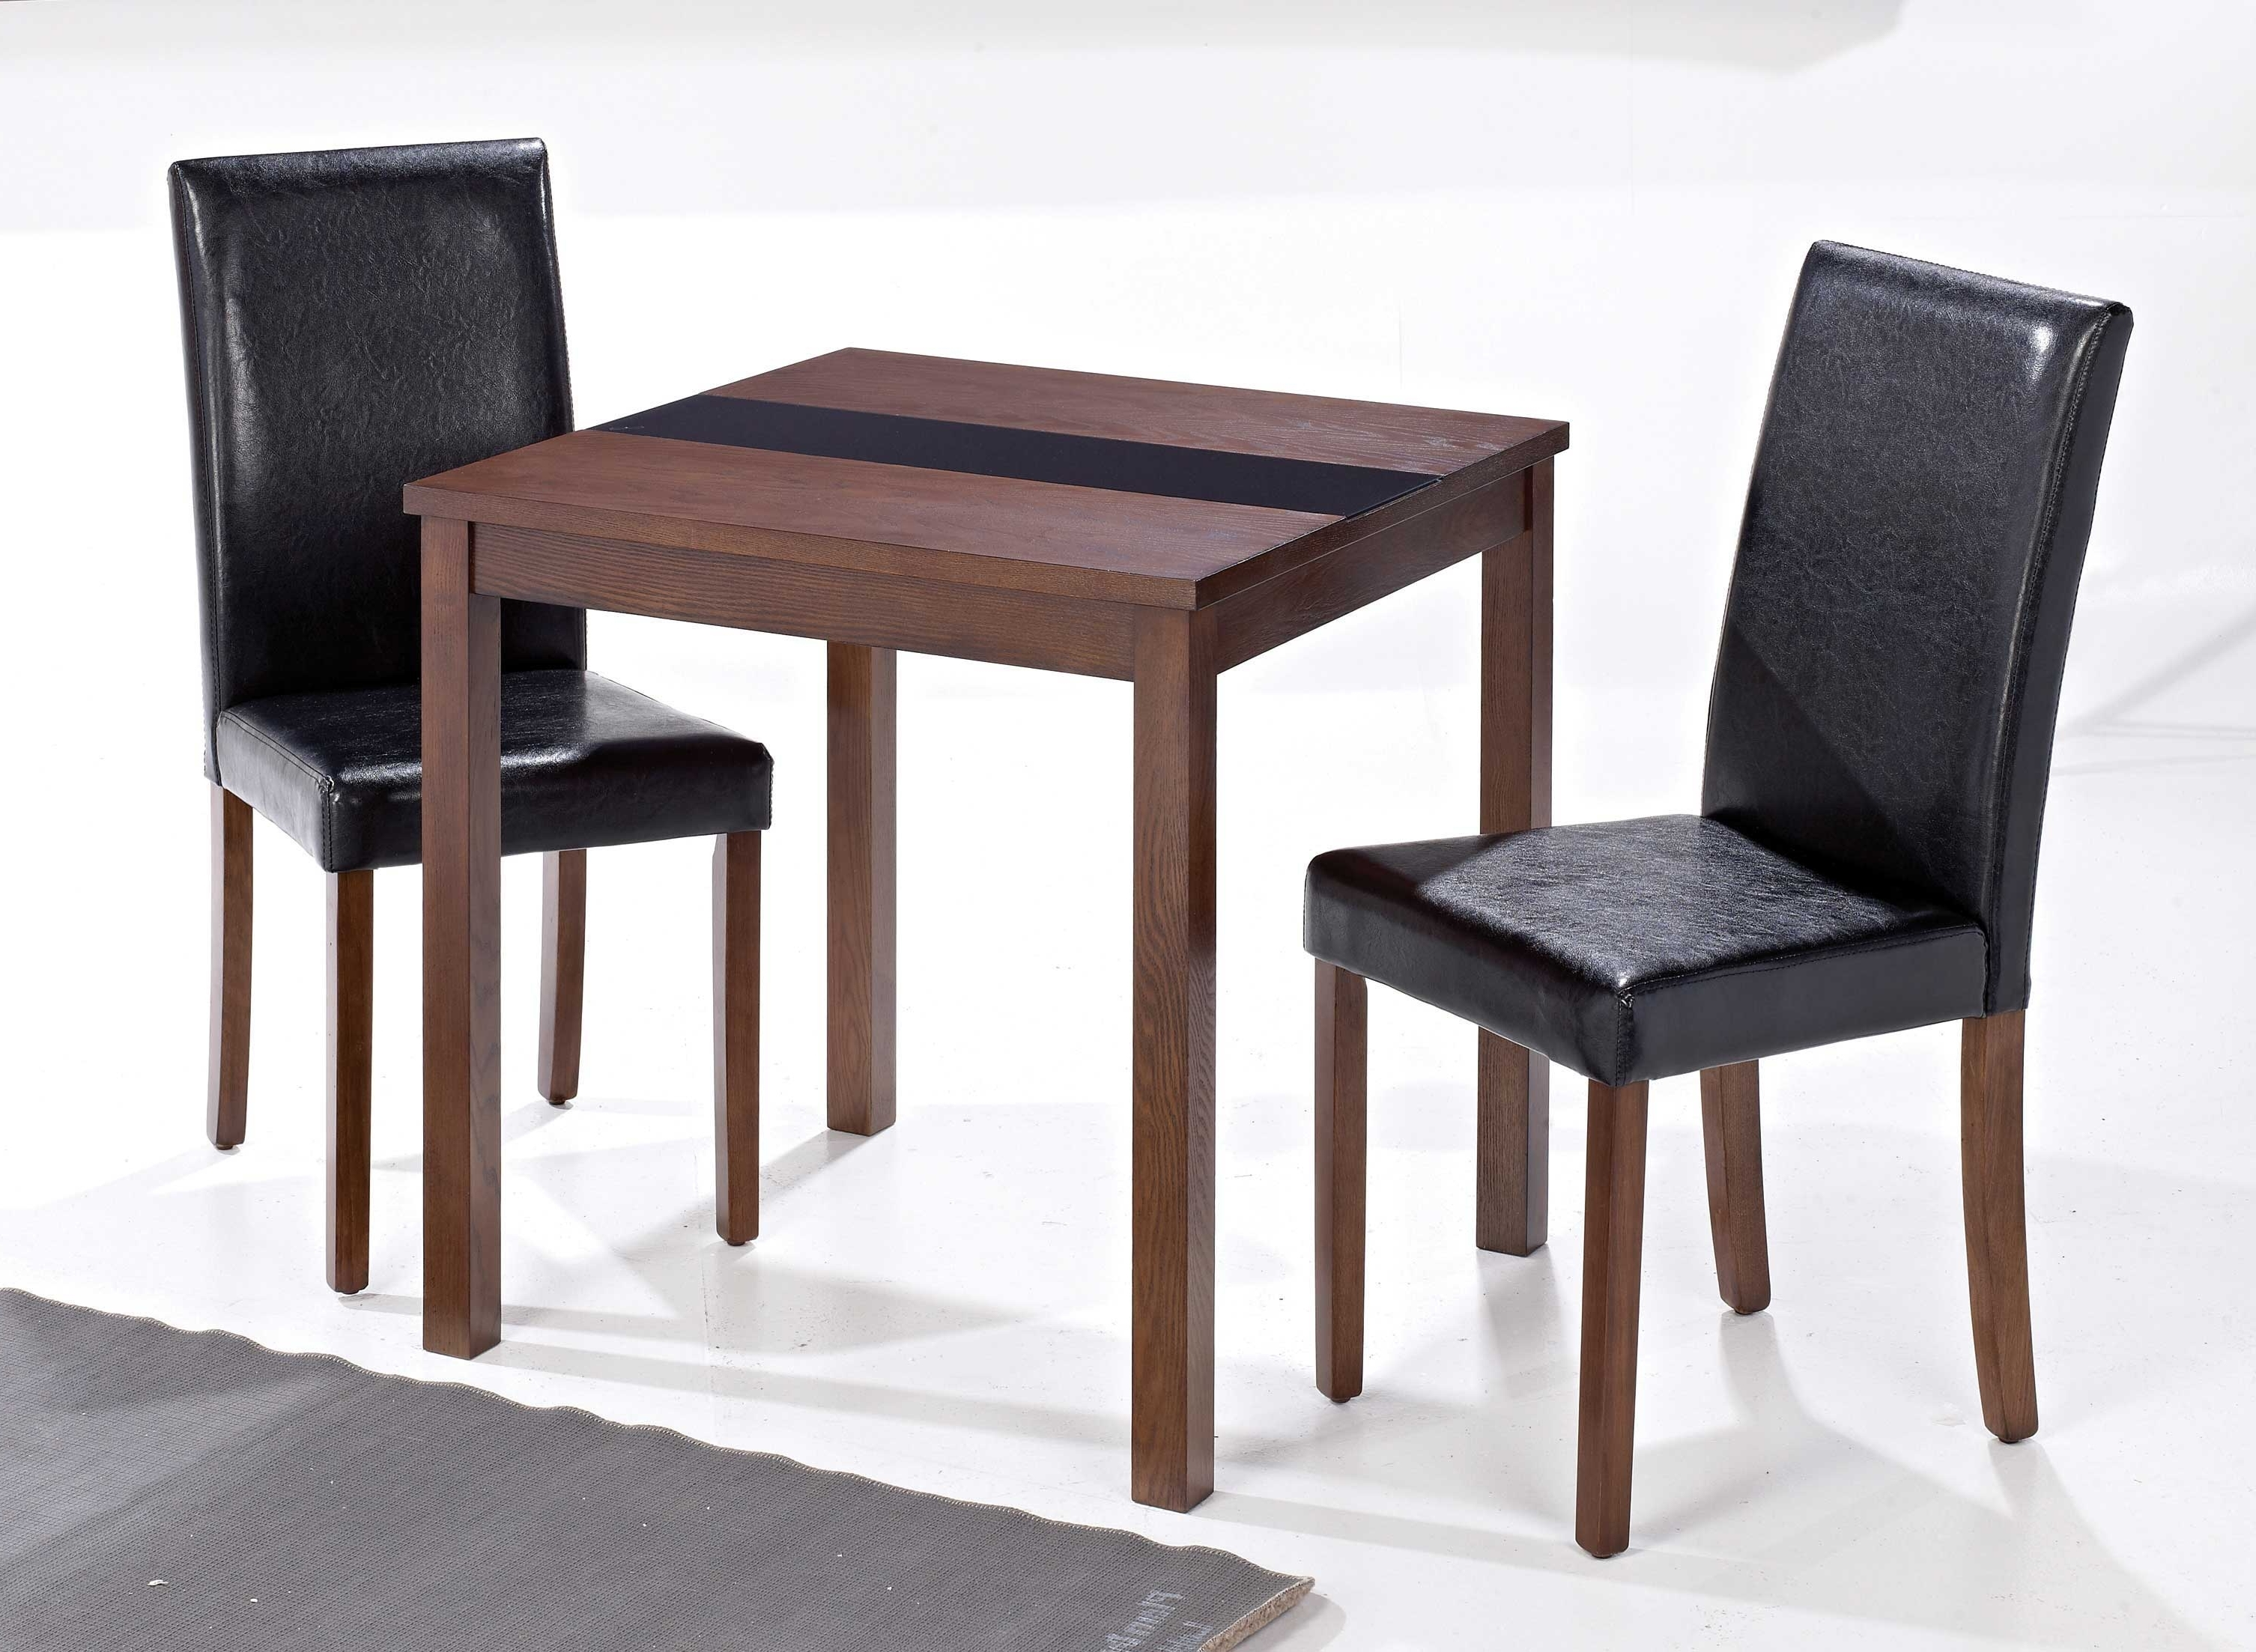 Dining Table Set 2 Seater • Table Setting Design With Most Up To Date Two Seater Dining Tables (Gallery 3 of 25)